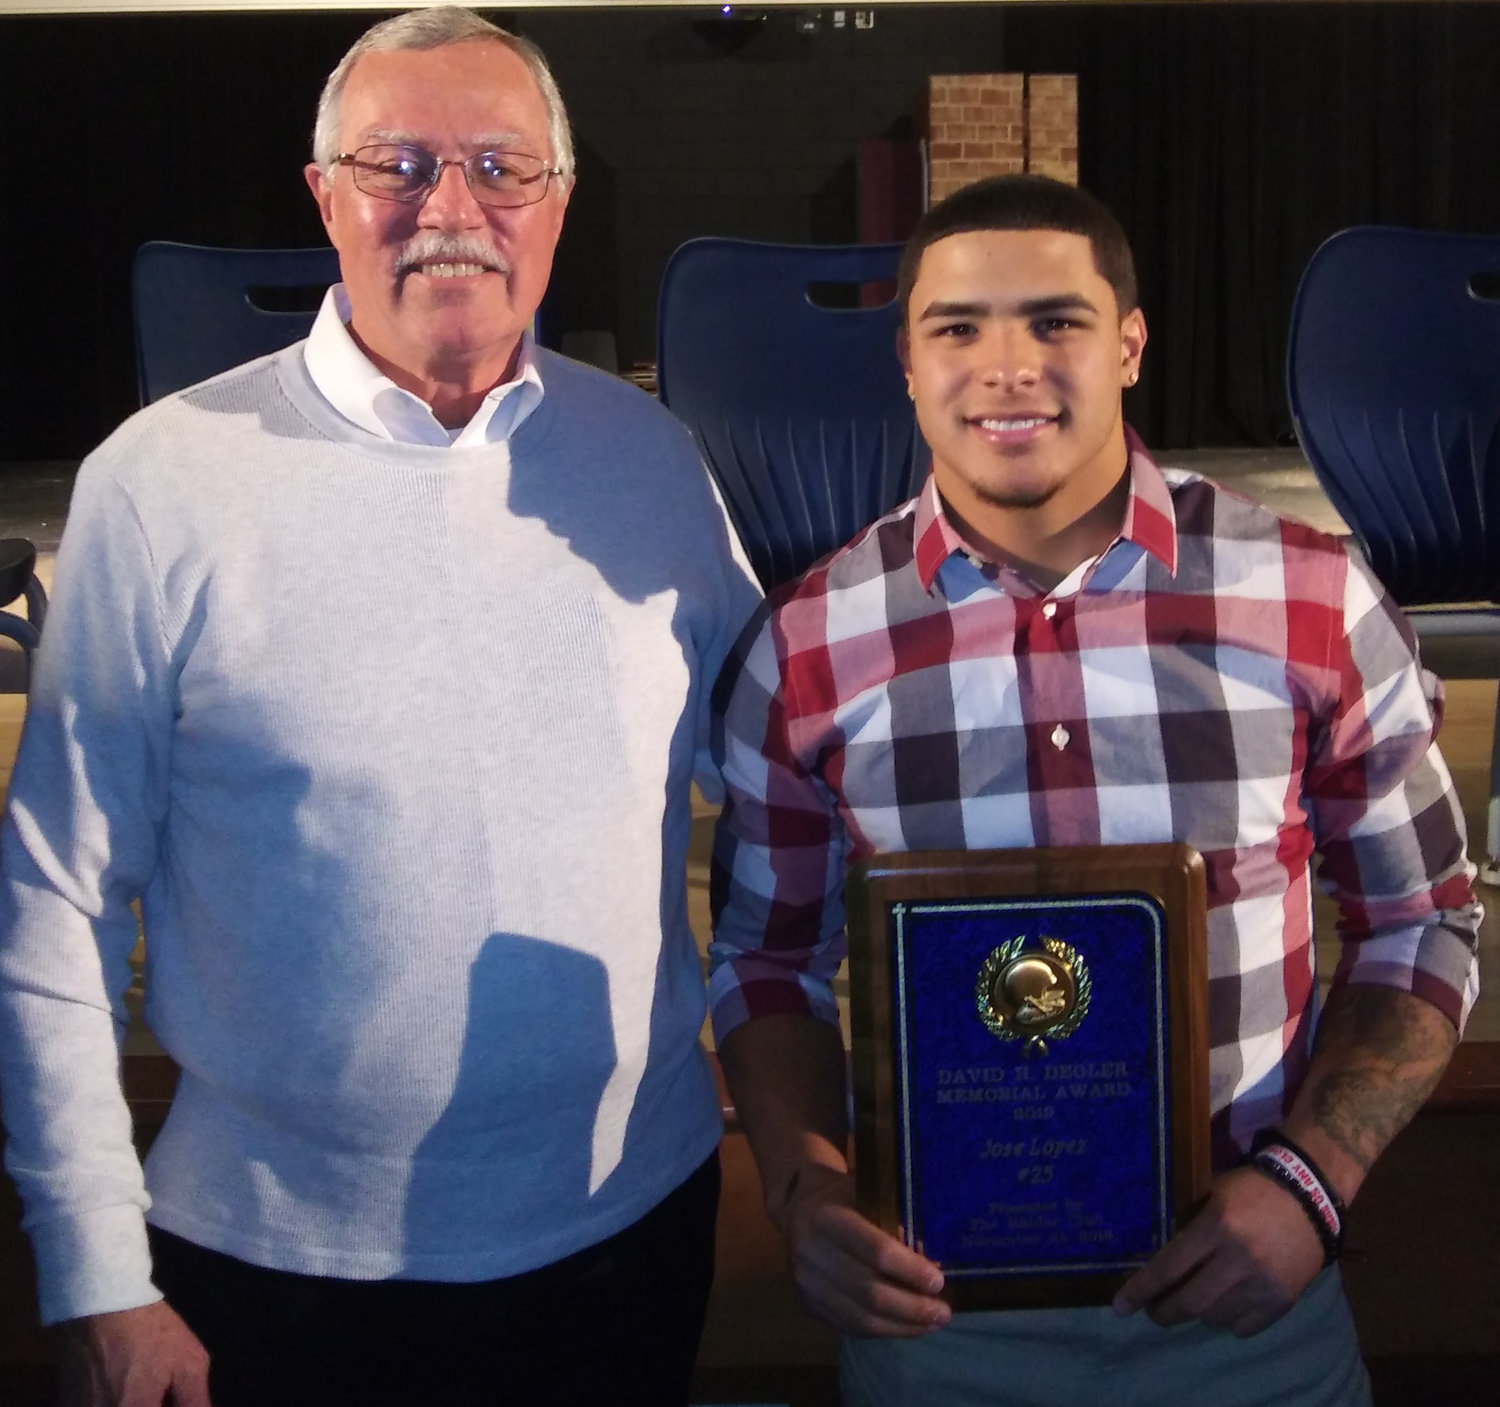 Press & Journal sports writer Larry Etter presented the Raider Club's annual David H. Degler Memorial Award to senior Jose Lopez at the football banquet that was held Sunday evening at the high school.